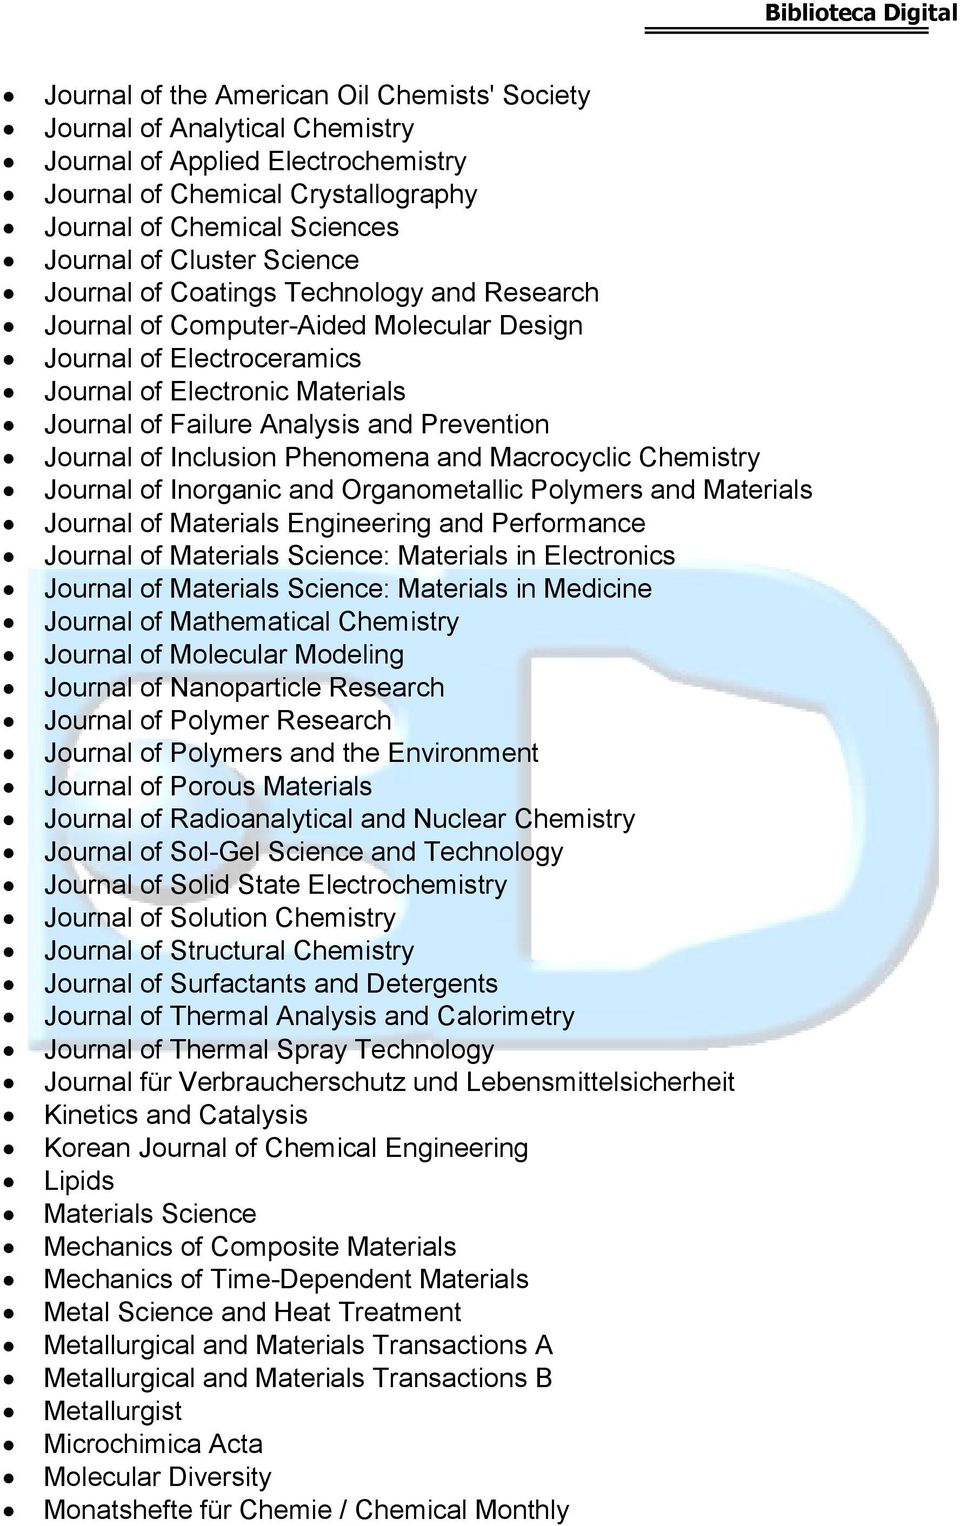 Journal of Inclusion Phenomena and Macrocyclic Chemistry Journal of Inorganic and Organometallic Polymers and Materials Journal of Materials Engineering and Performance Journal of Materials Science: